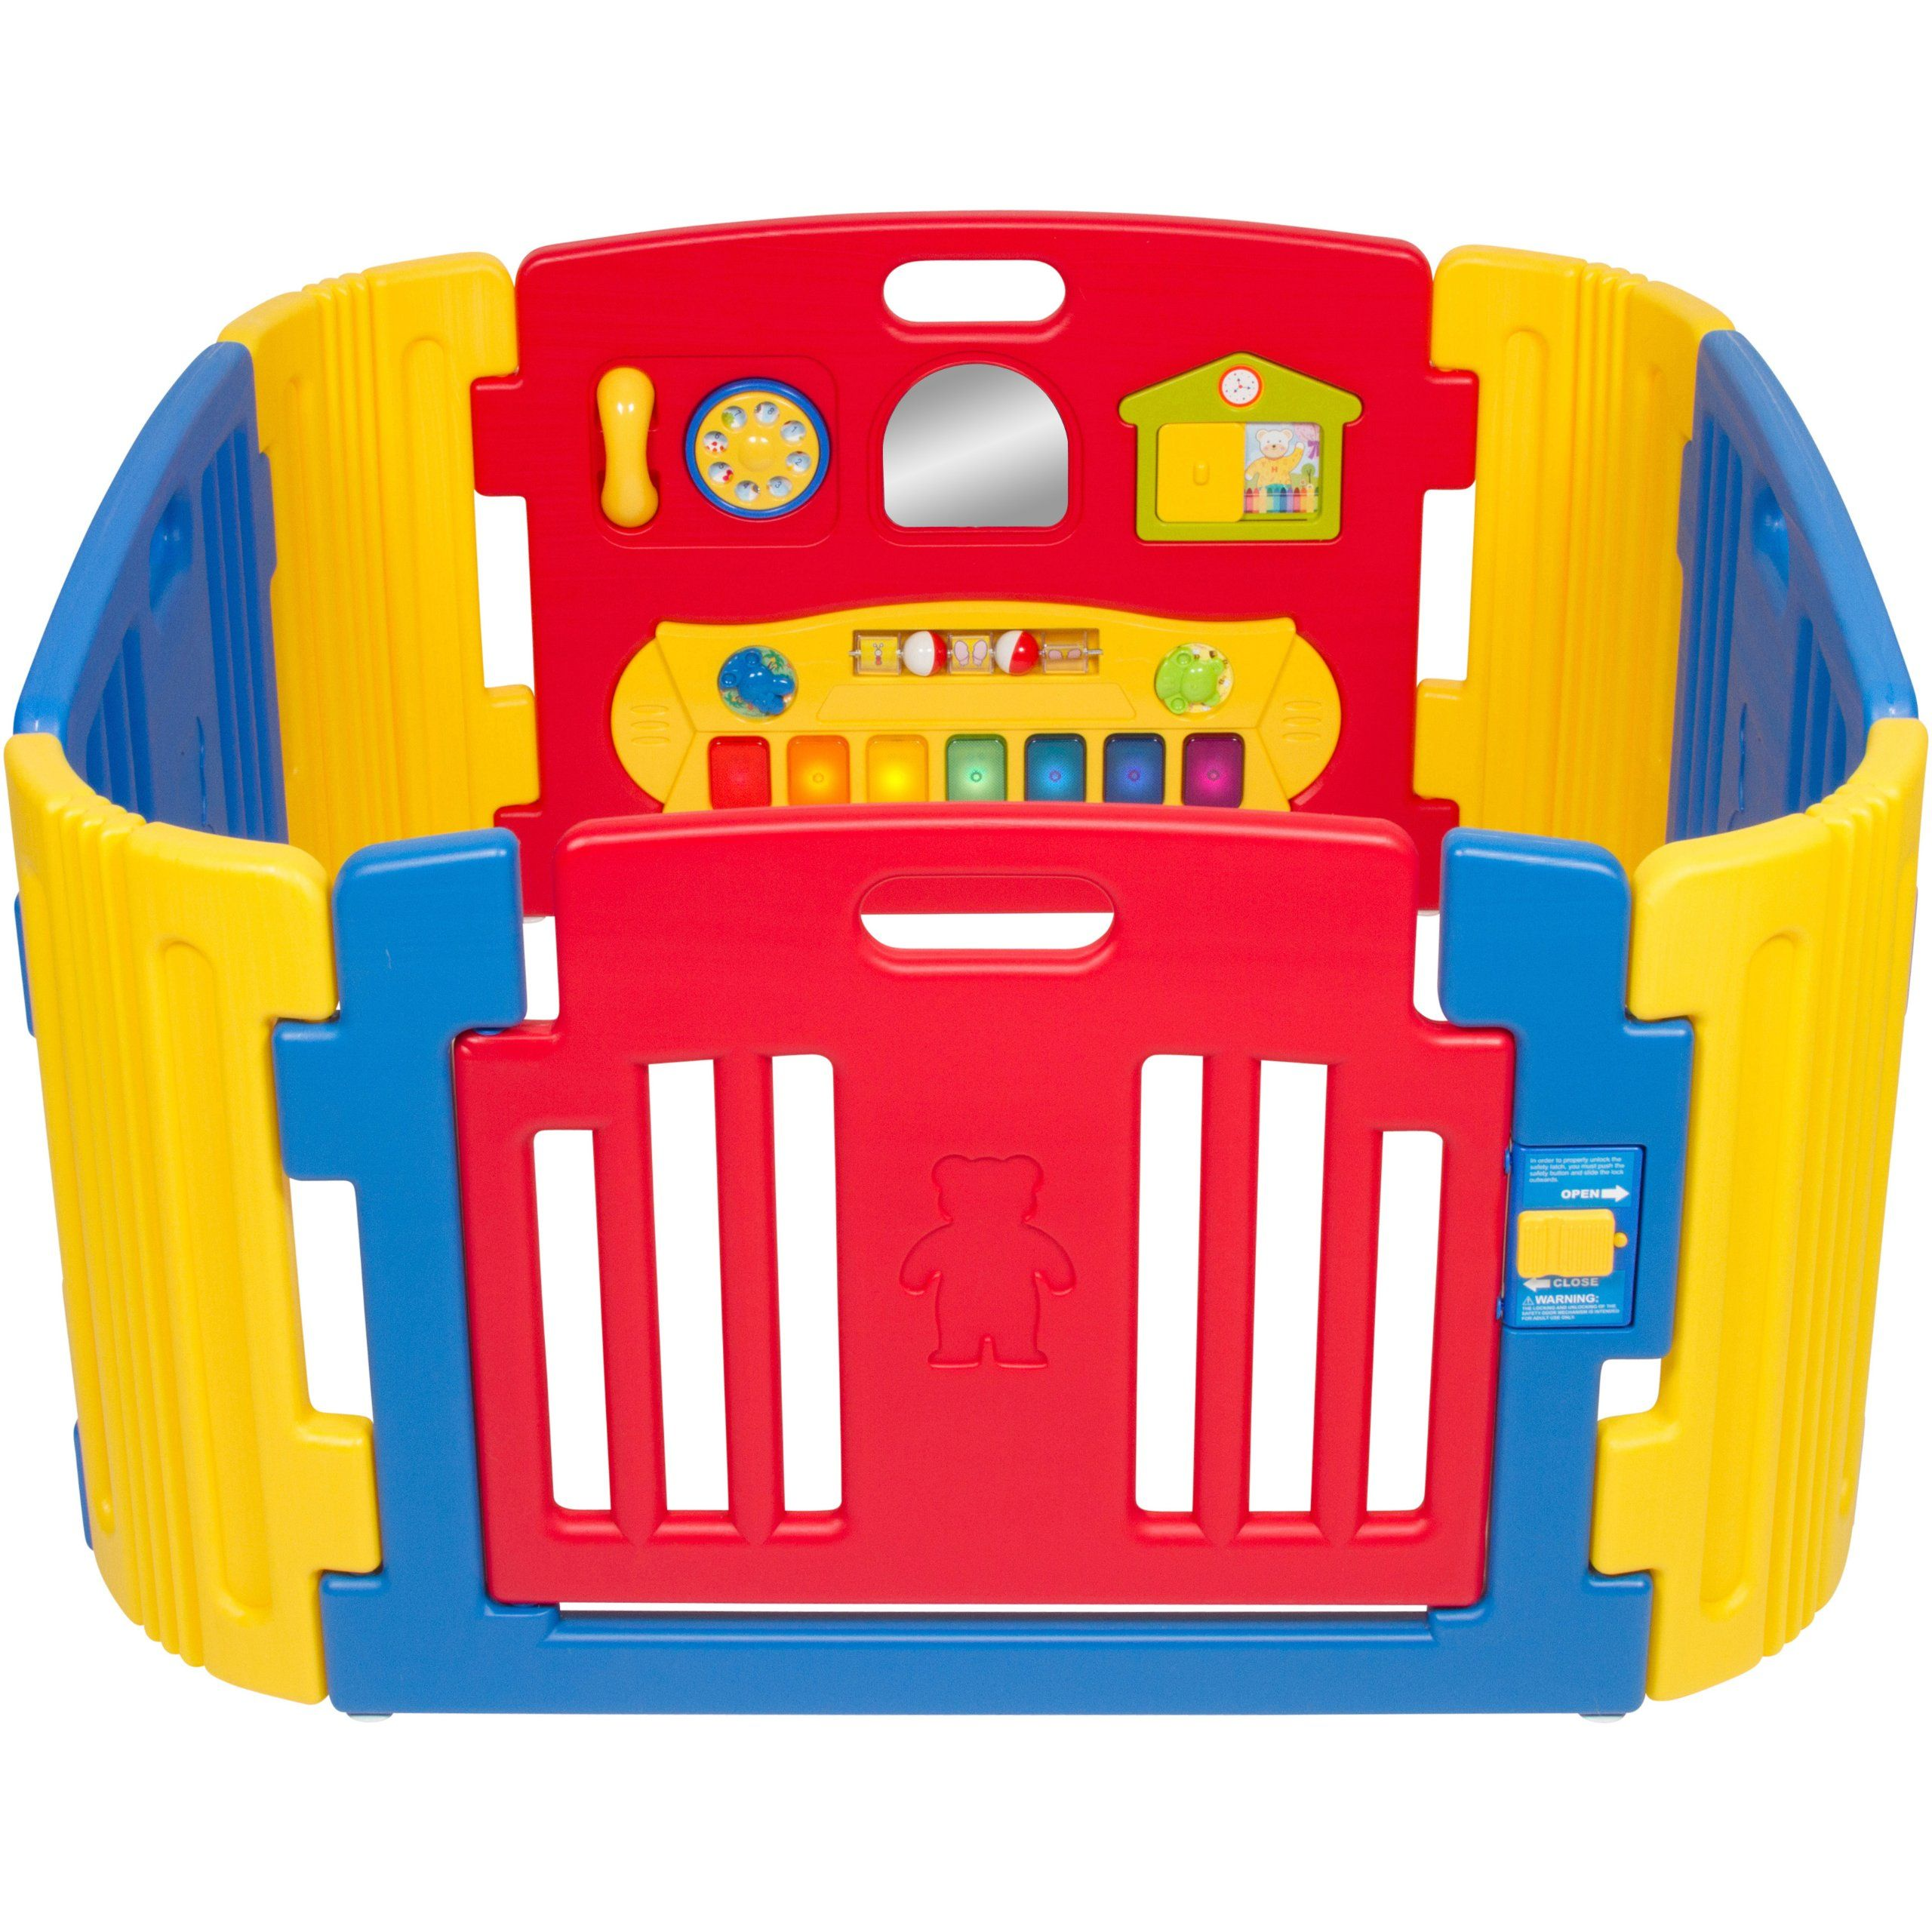 Amazon Friendly Toys Little Playzone with Electronic Lights